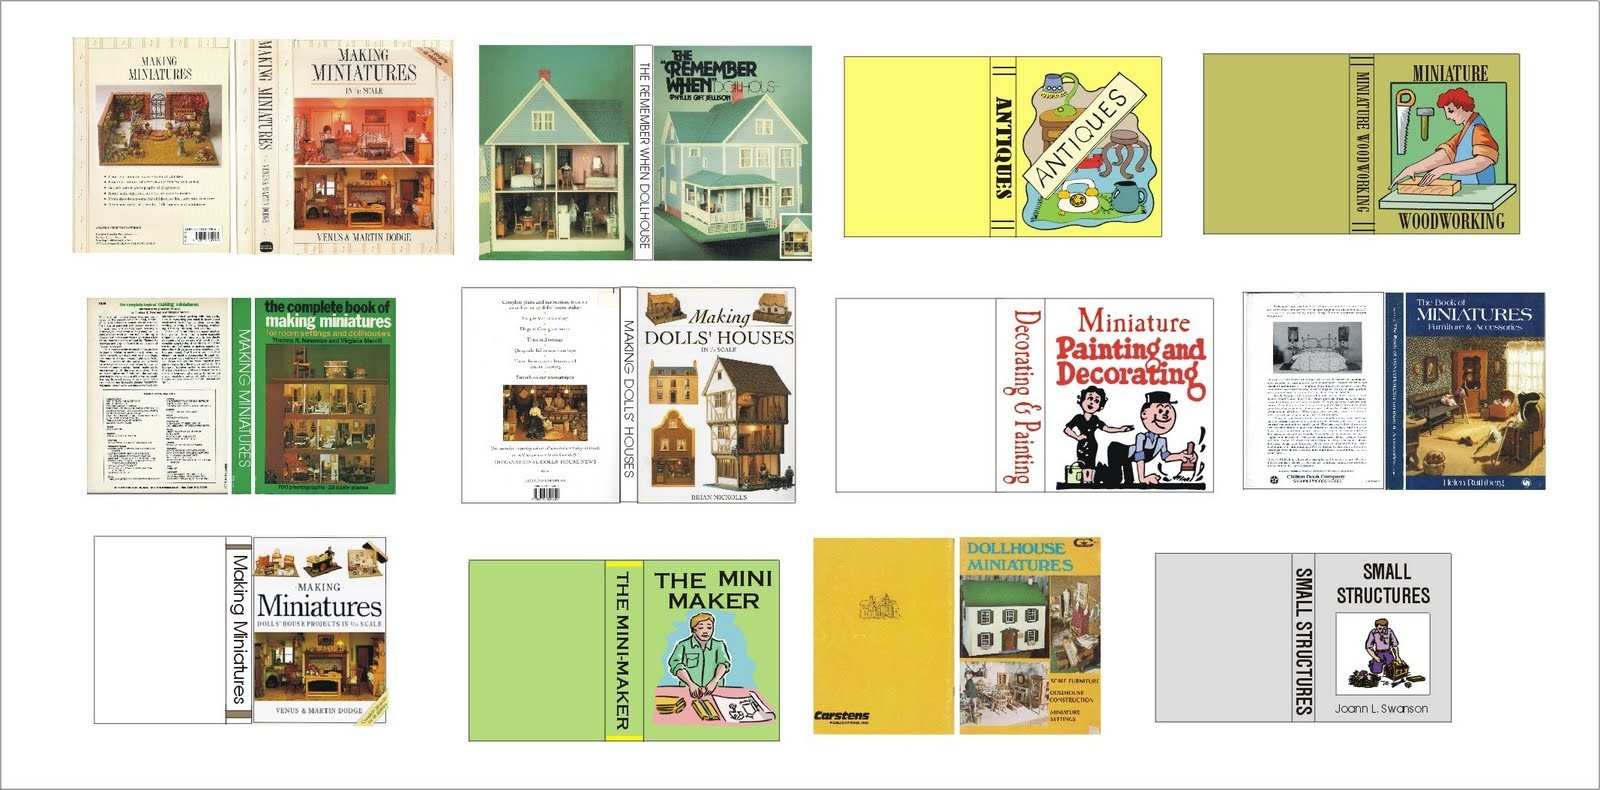 Dollhouse Miniature Printable Book Covers | Pictureicon - Free Printable Miniature Book Covers